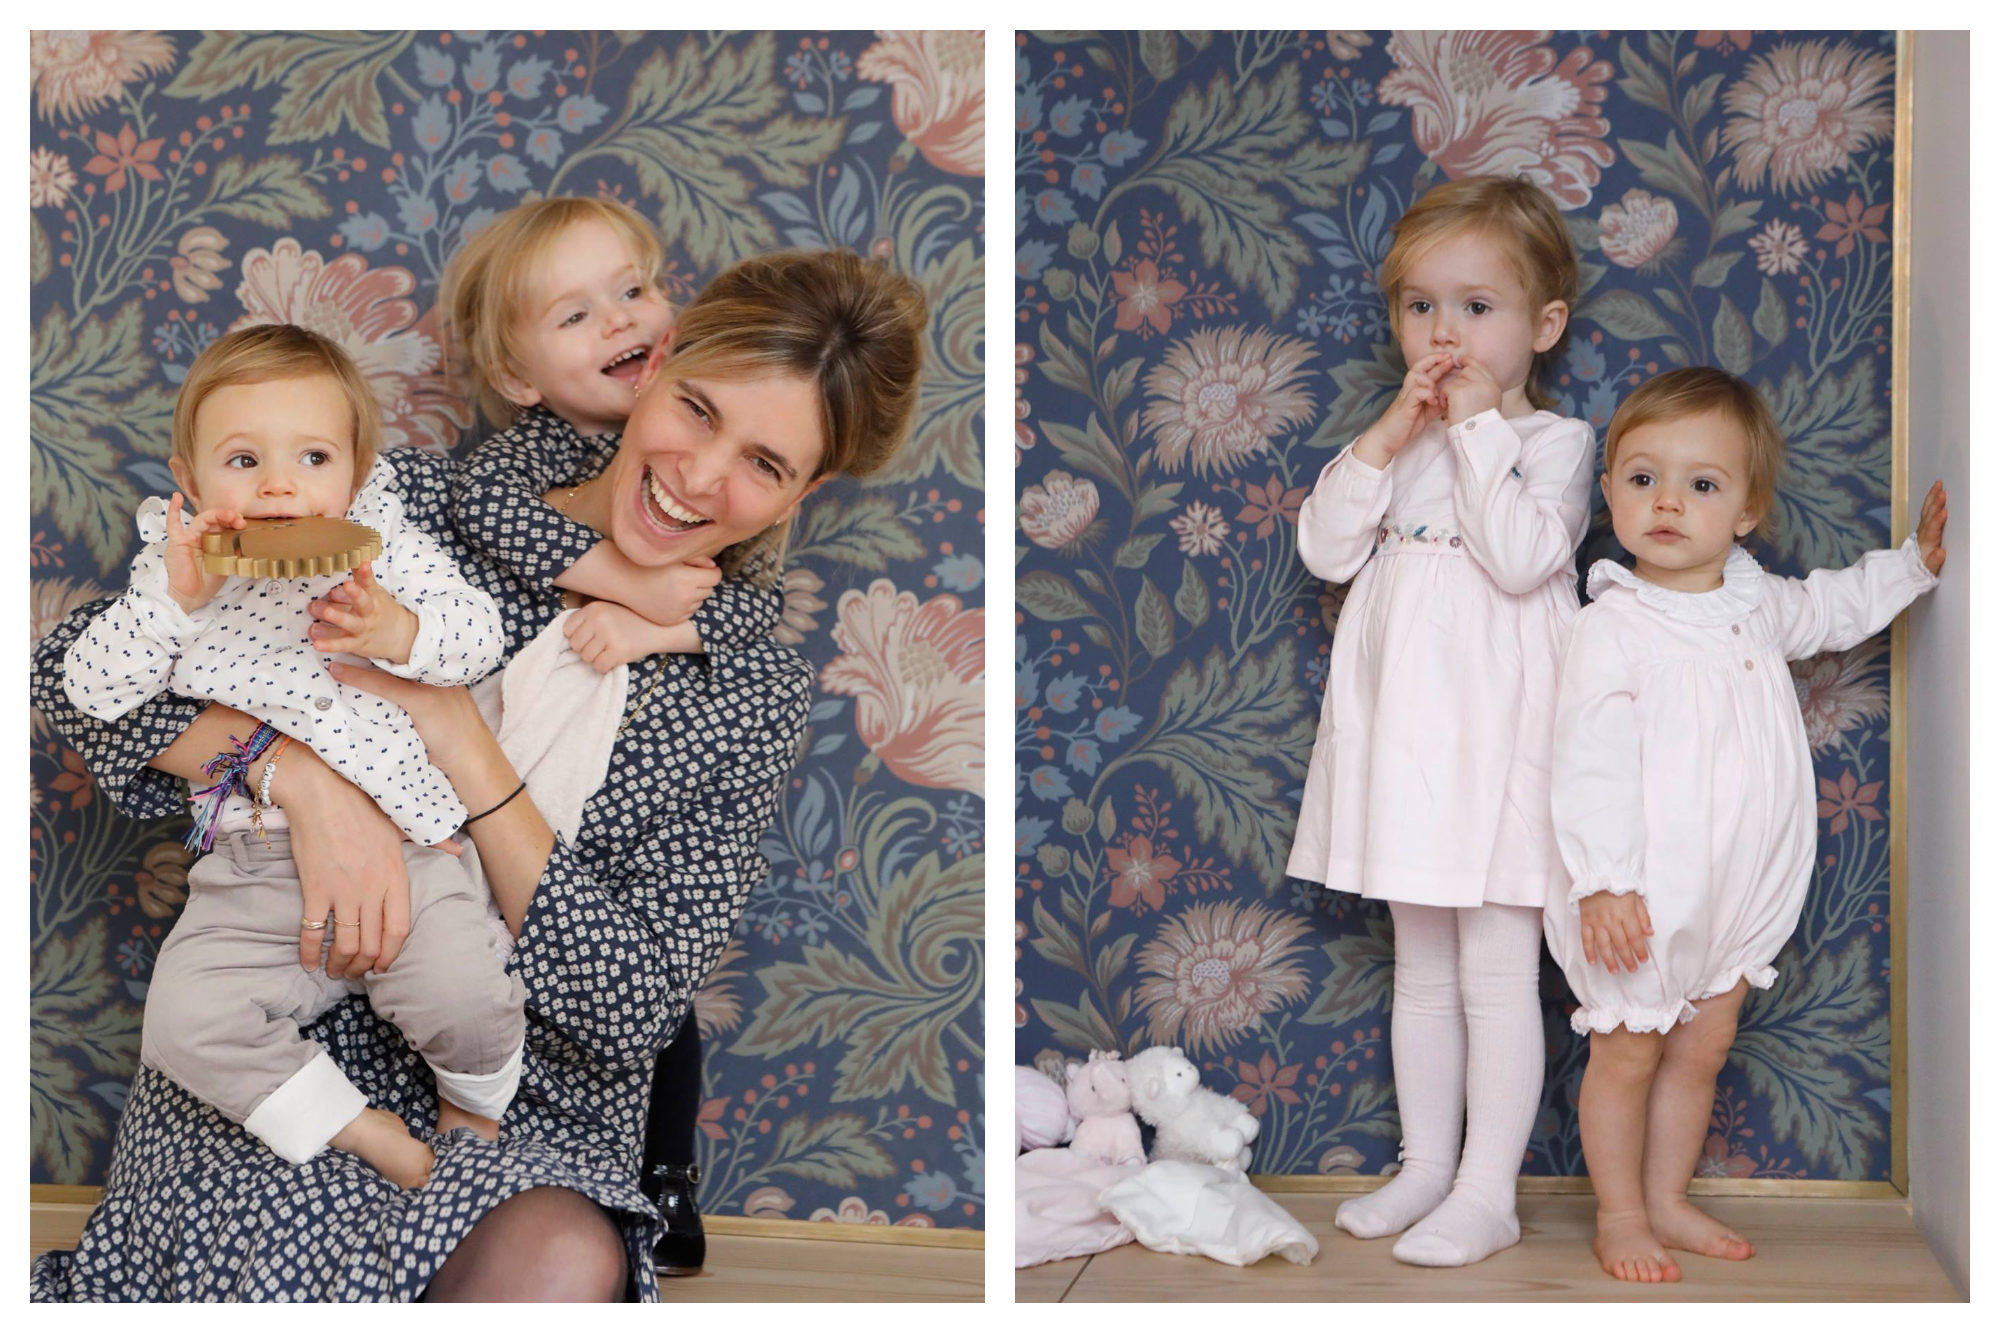 A mother laughing with her two children against a backdrop of swirling flower-print wallpaper (left). Two little girls standing in front of the same wallpaper, dressed in outfits from Tartine et Chocolat (right).